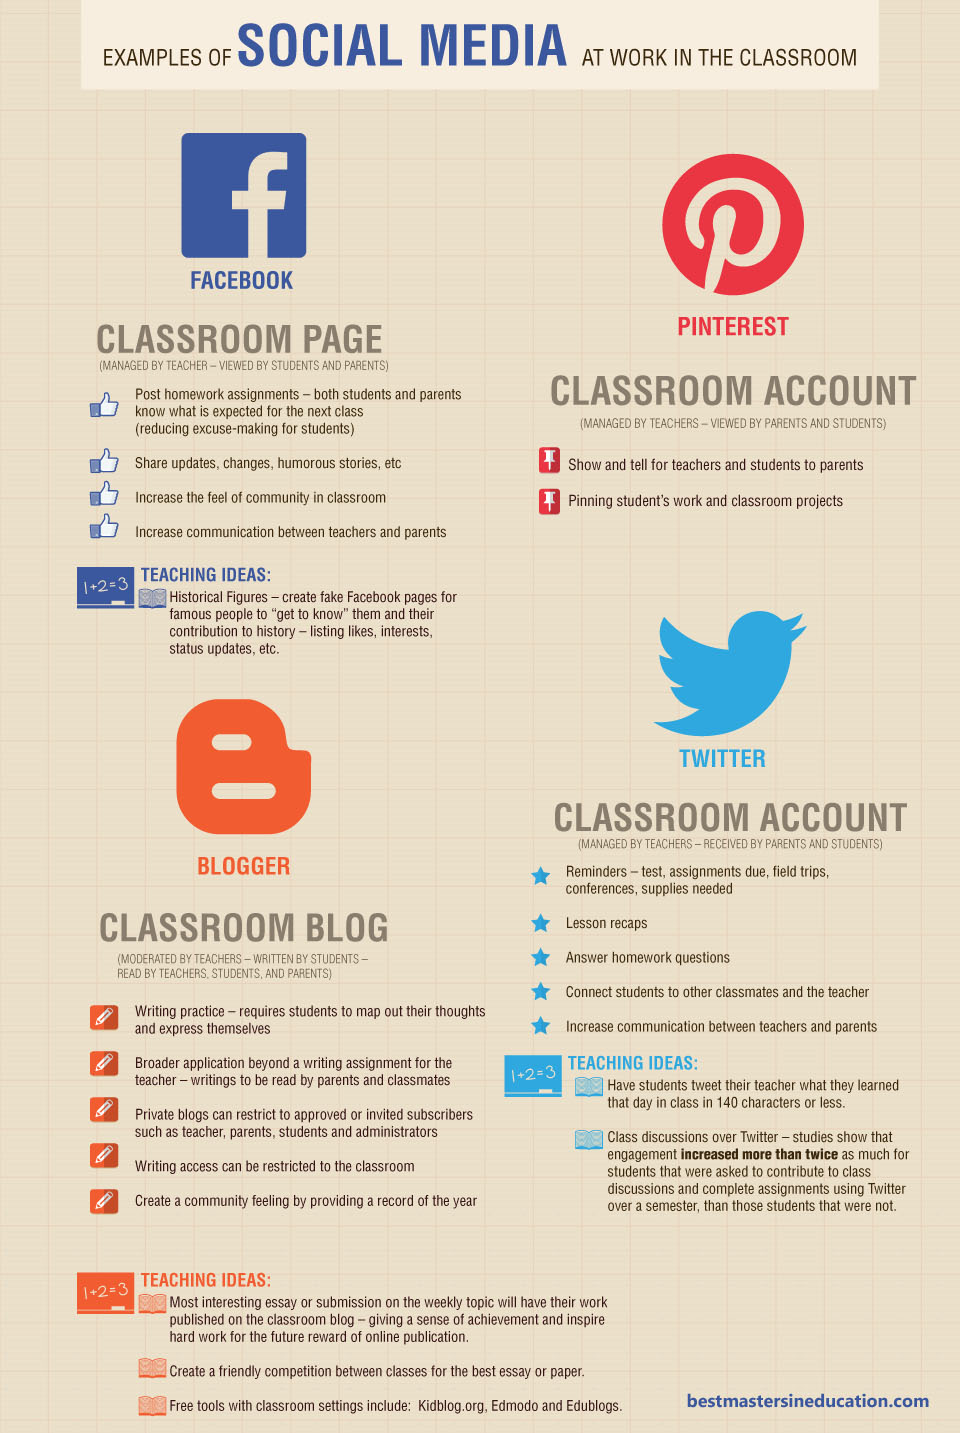 22 simple examples of social media in the classroom examples of social media in the classroom ideas